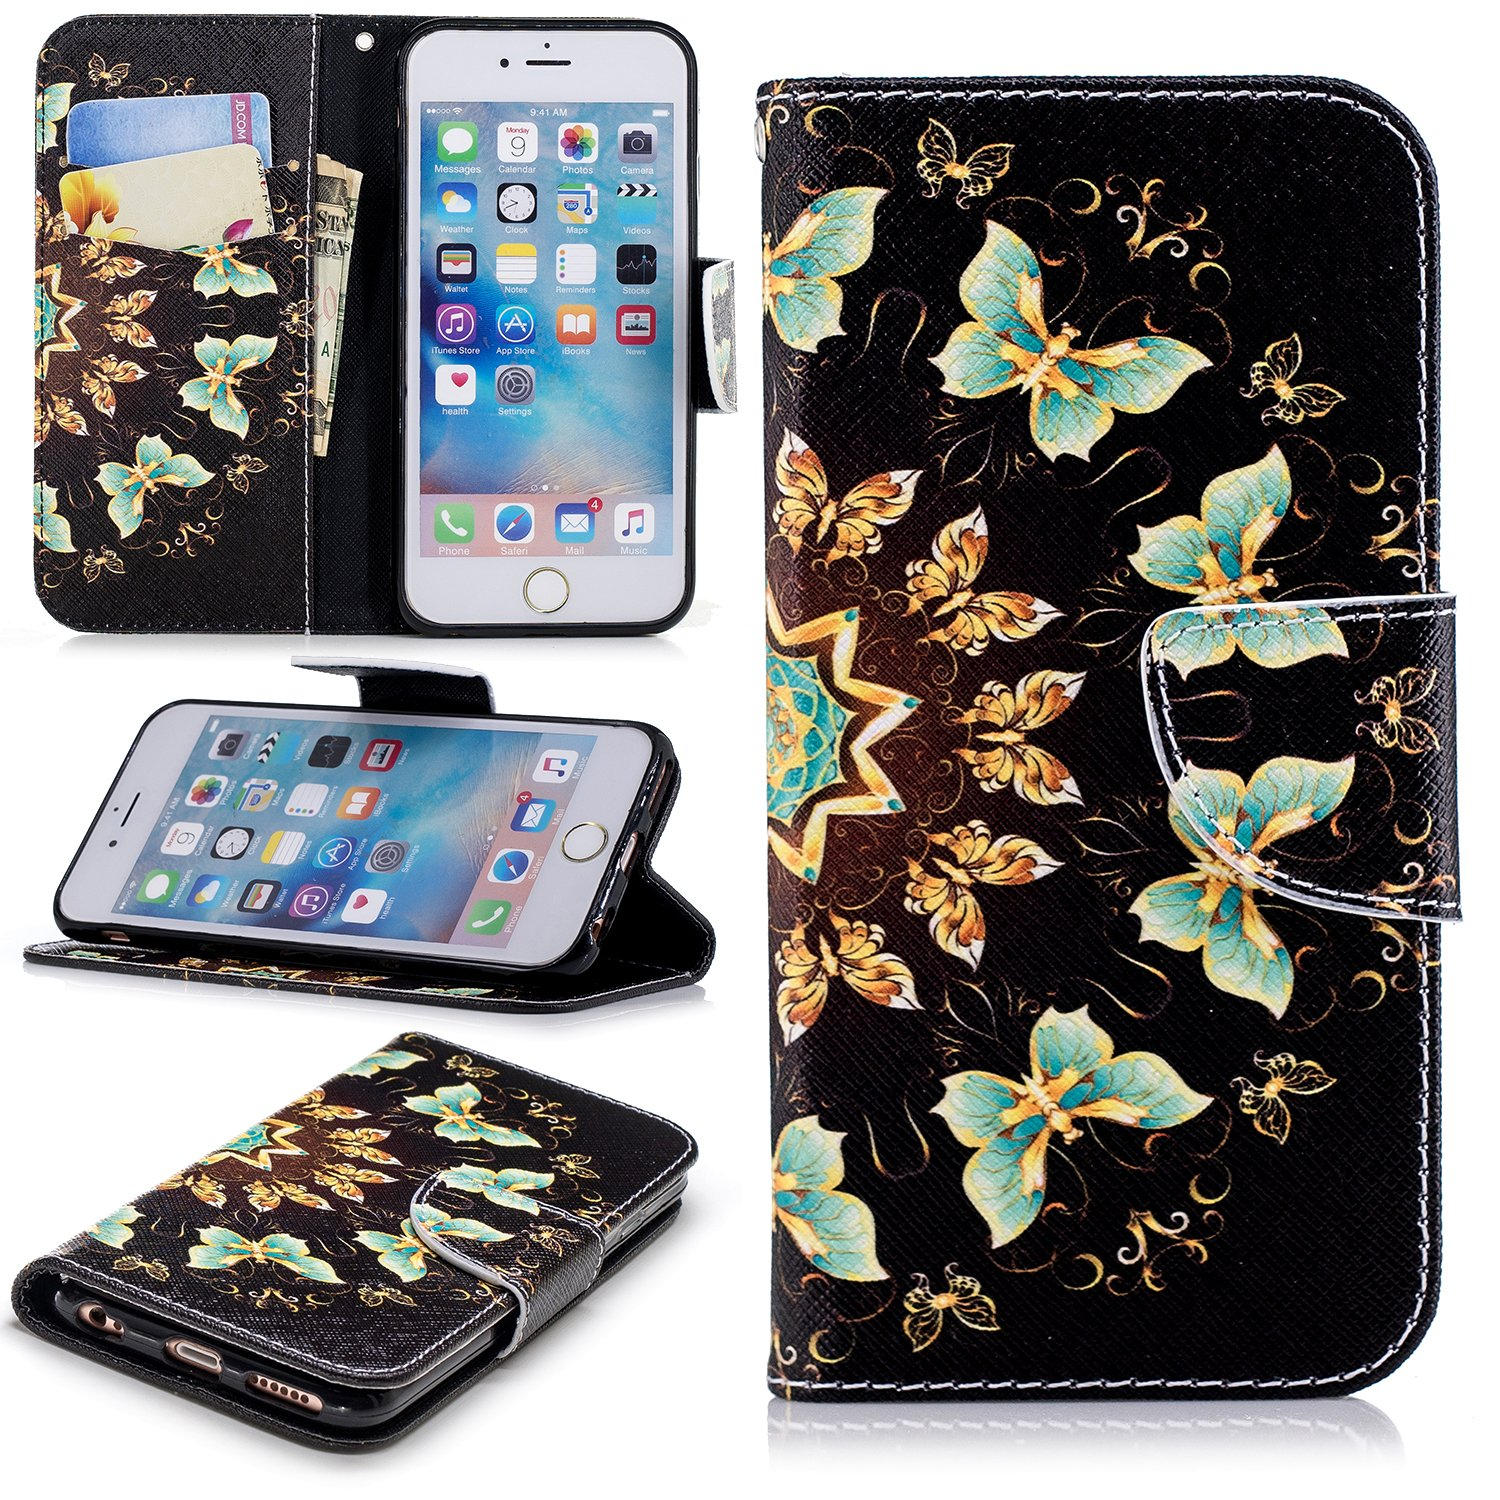 PU Cuir Coque pour iPhone 7 (4.7 pouces),Portefeuille Housse pour iPhone 8 (4.7 pouces),Leeook Rétro Cool Or Bleu Papillon Motif Flip Dustproof Bookstyle Fermeture Aimantée Dragonne Wallet Portefeuille Case Étui Coquille Couverture ave